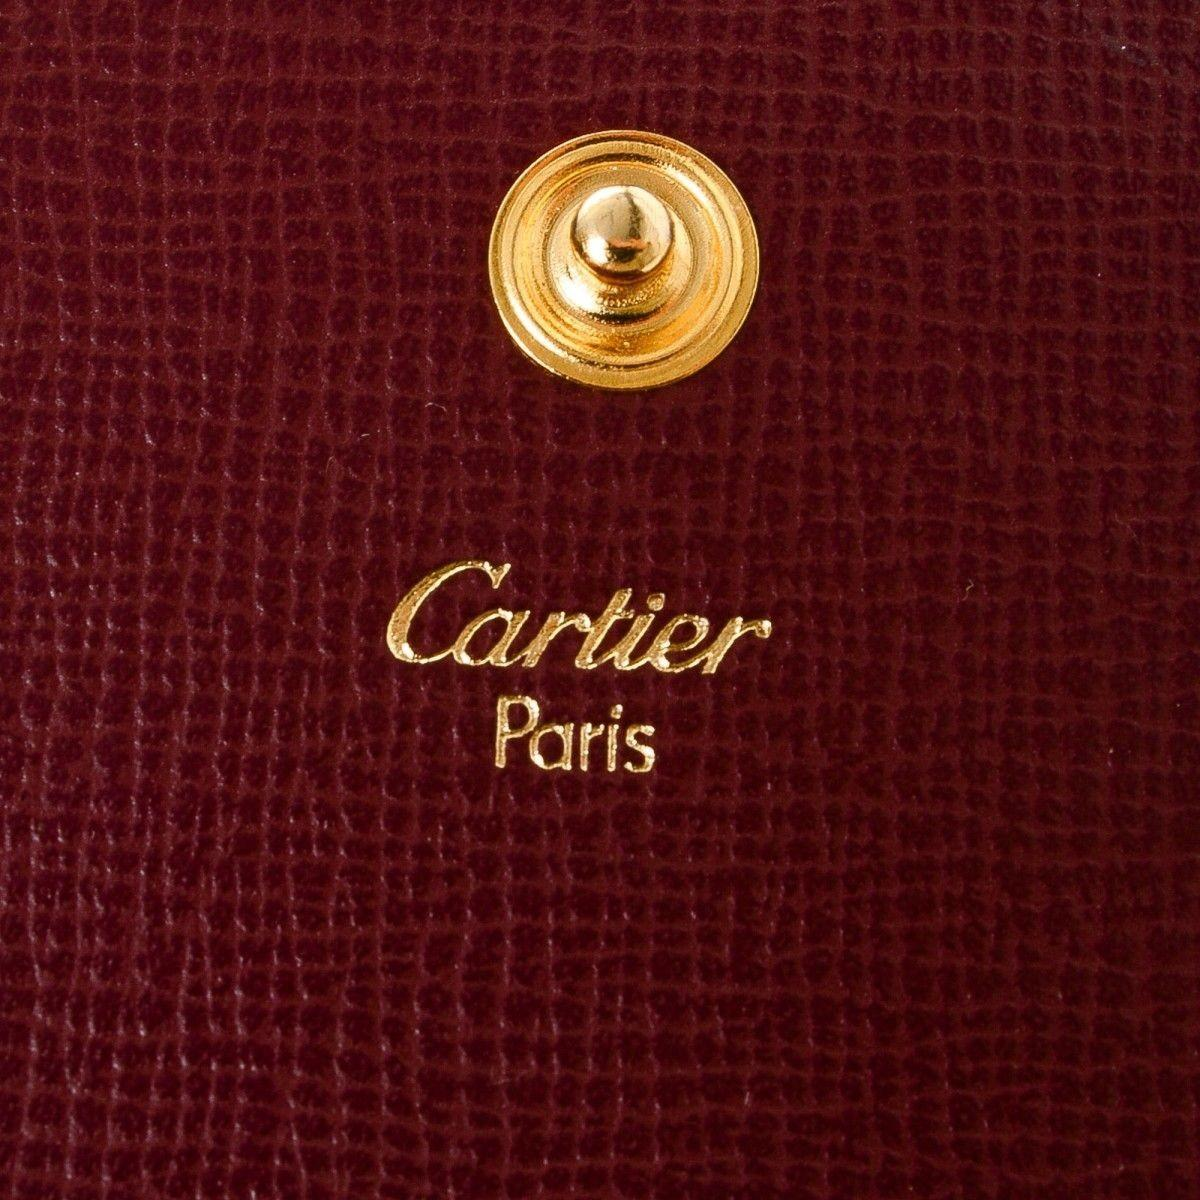 Cartier Coin Purse Leather Lxrandco Pre Owned Luxury